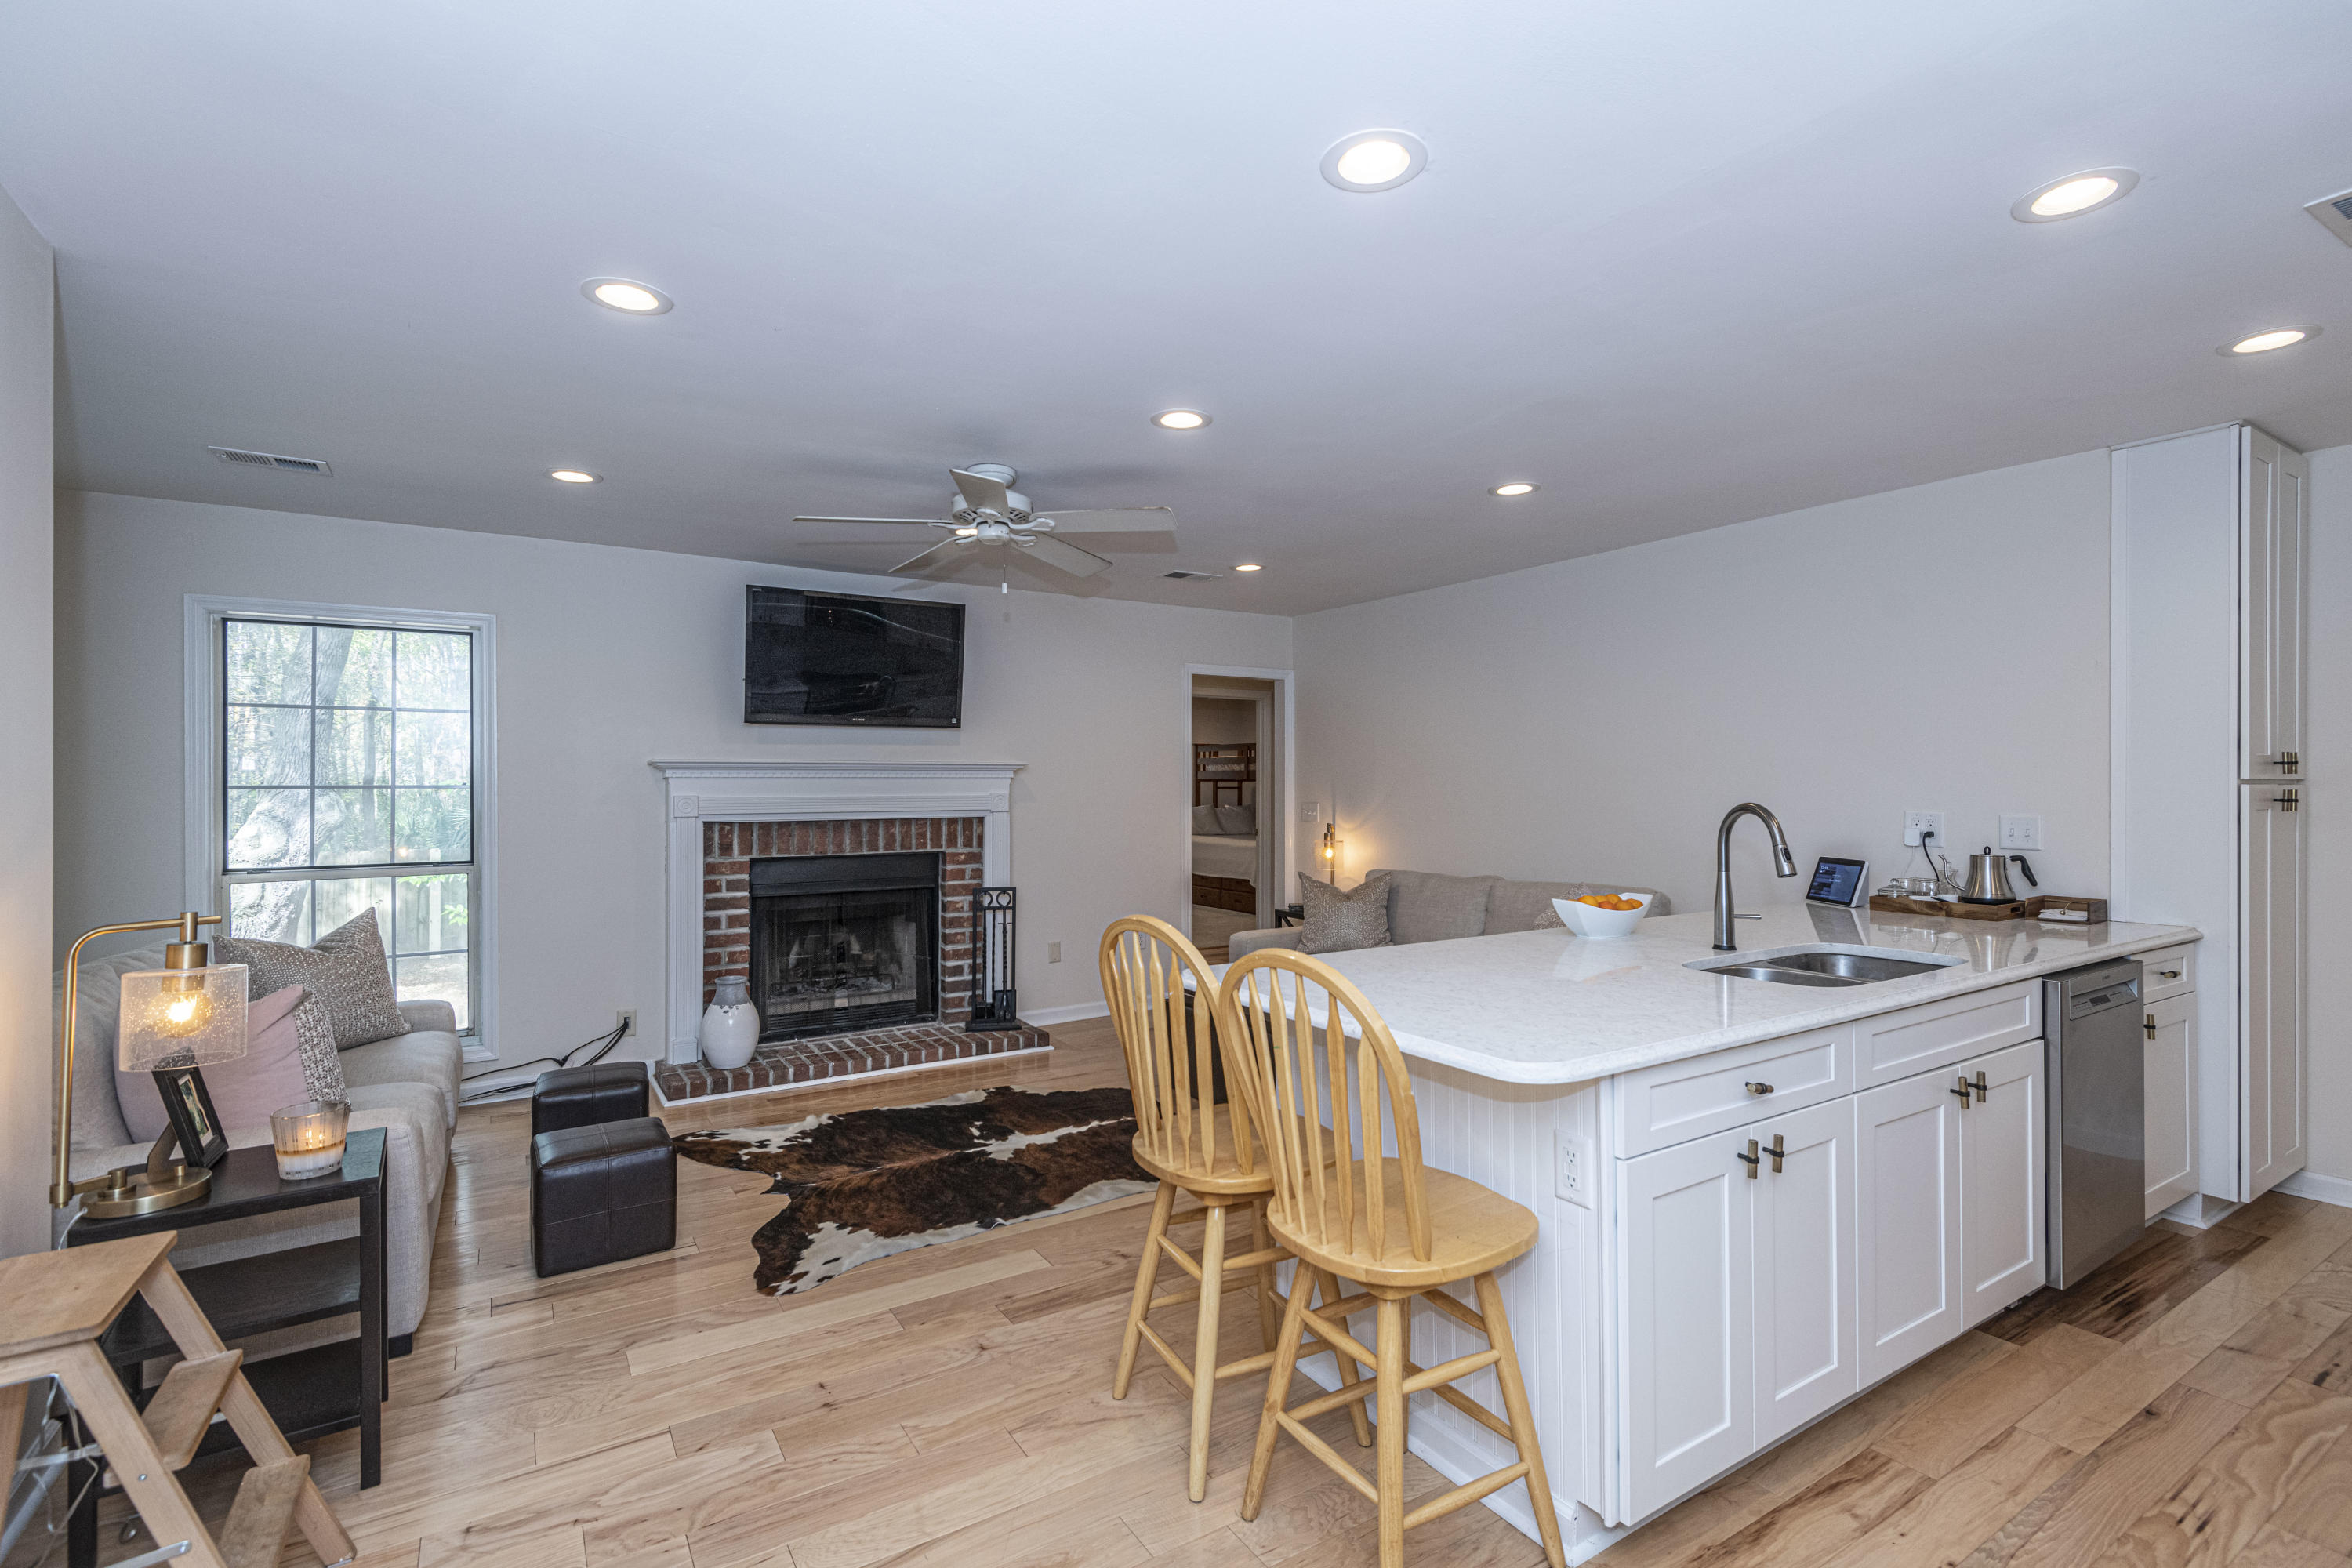 Coopers Pointe Homes For Sale - 1582 Hatteras Sound, Mount Pleasant, SC - 2